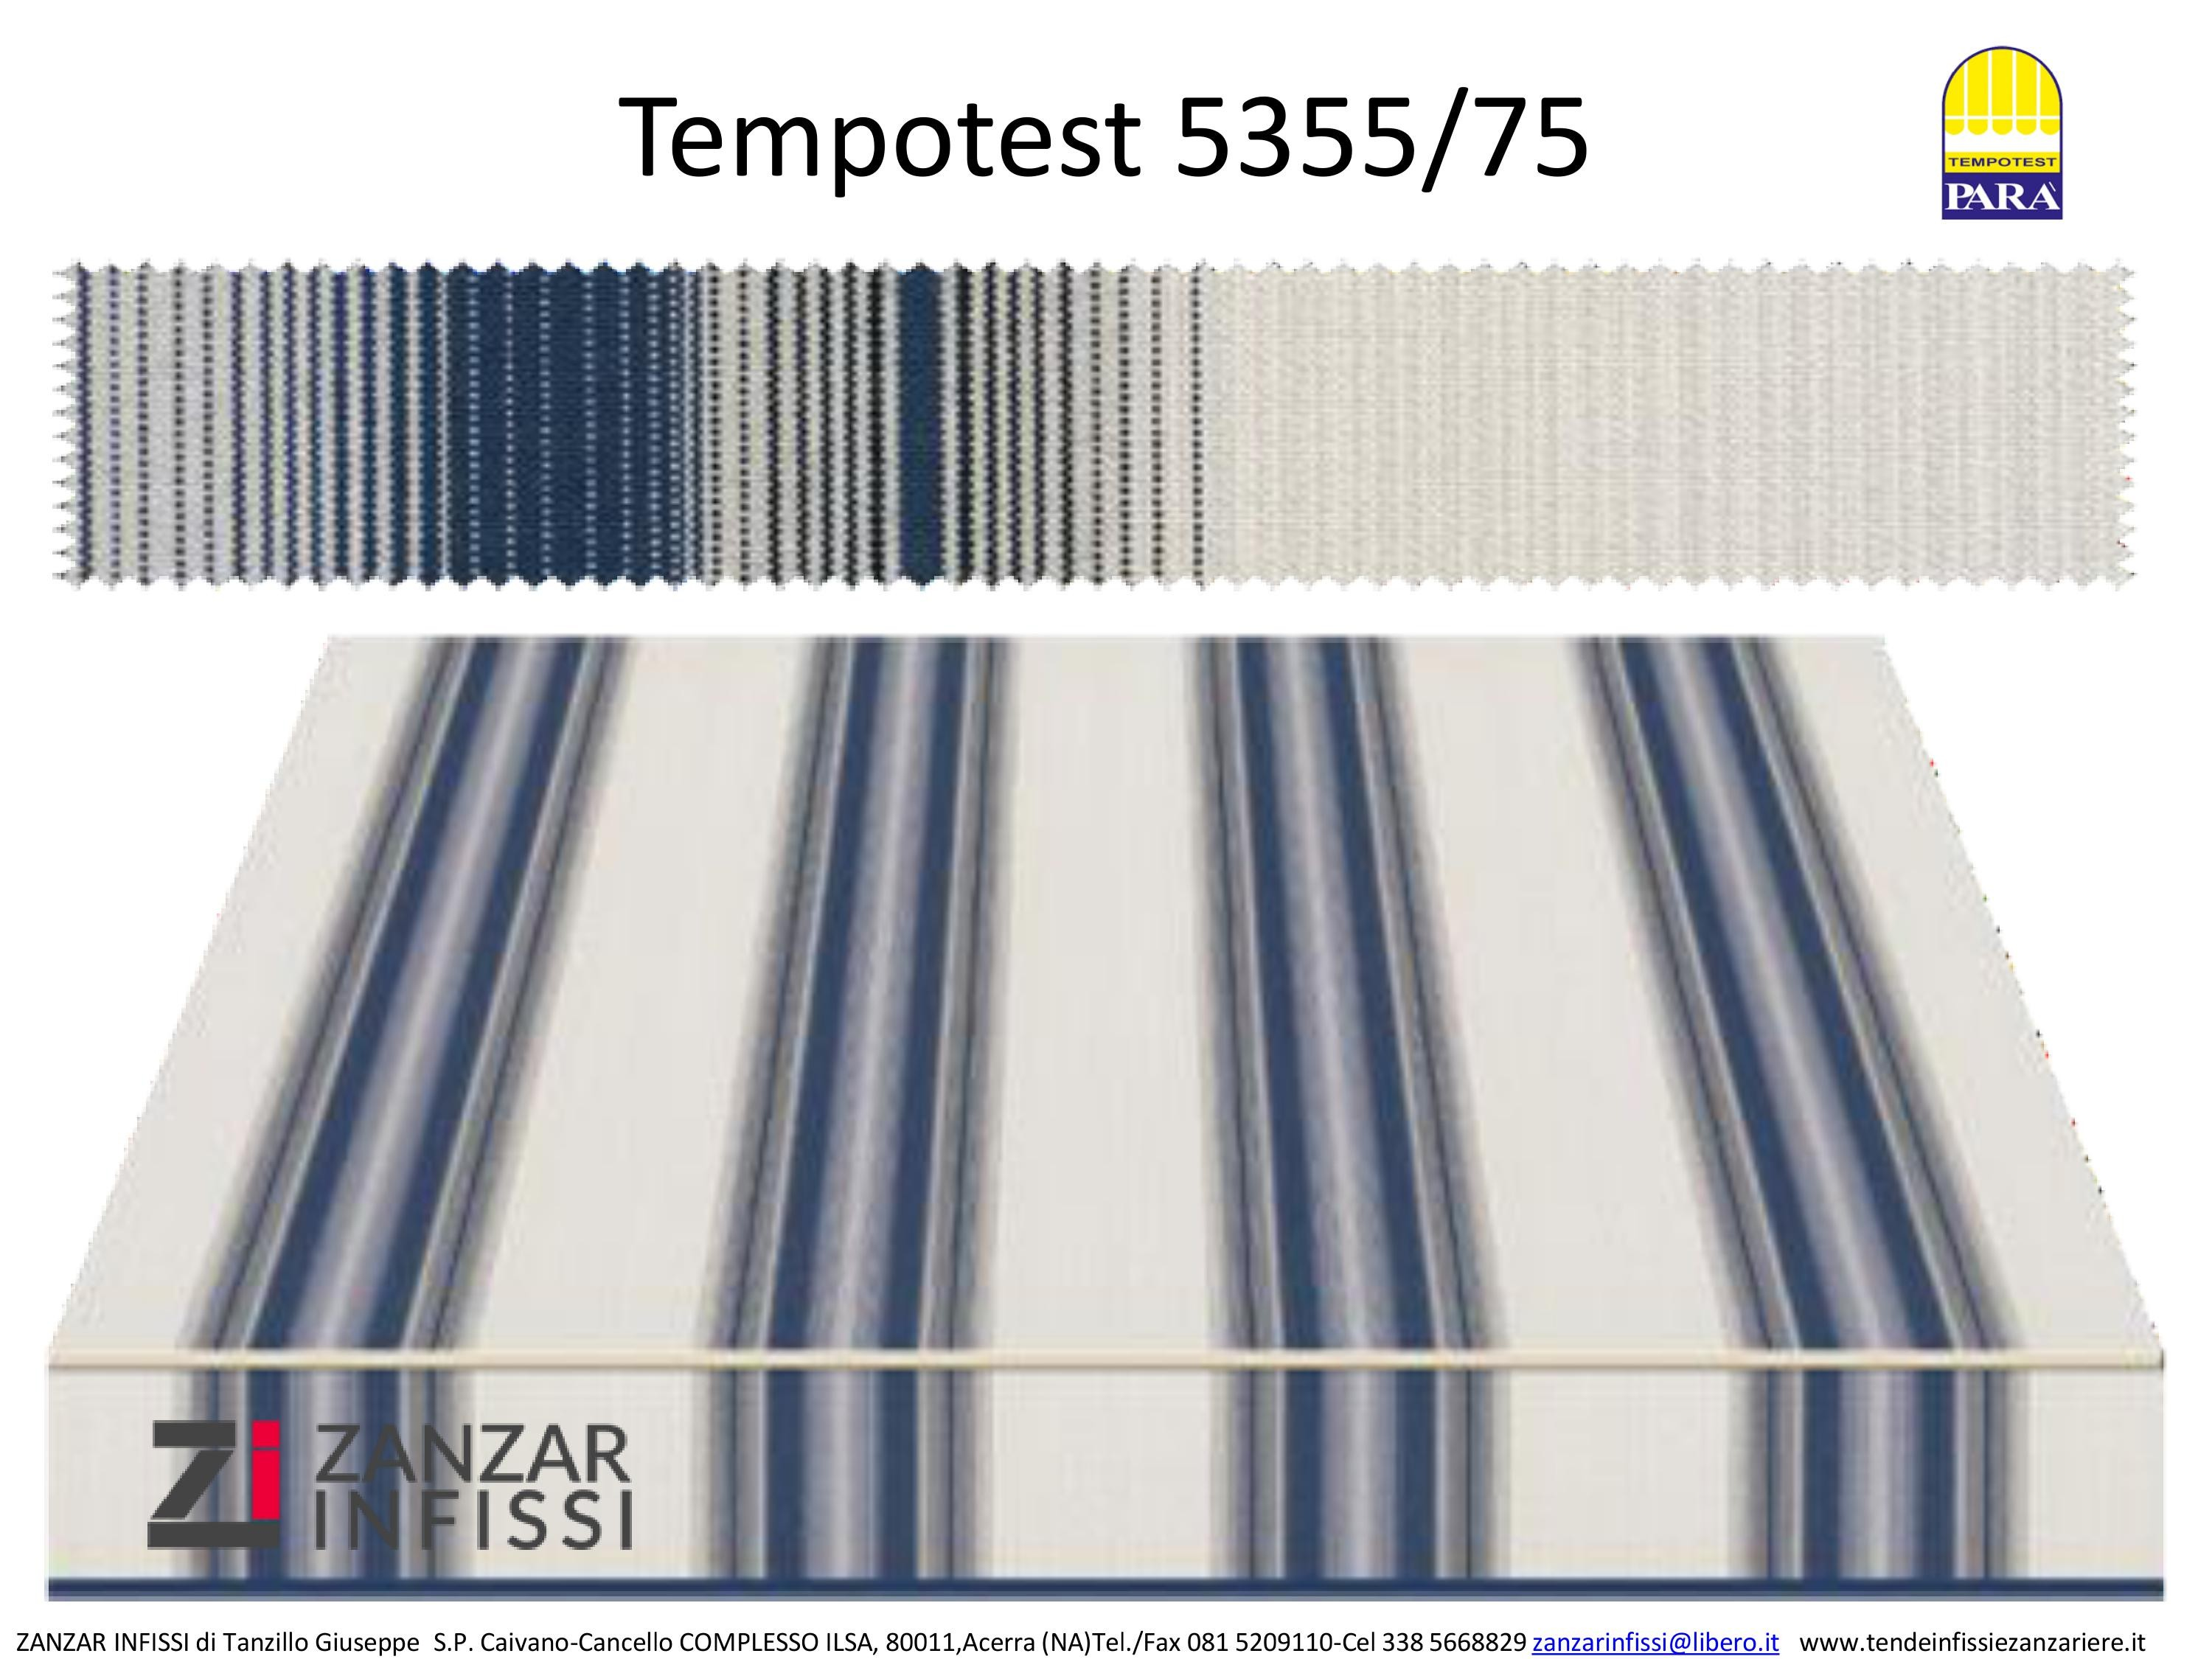 Tempotest 5355/75